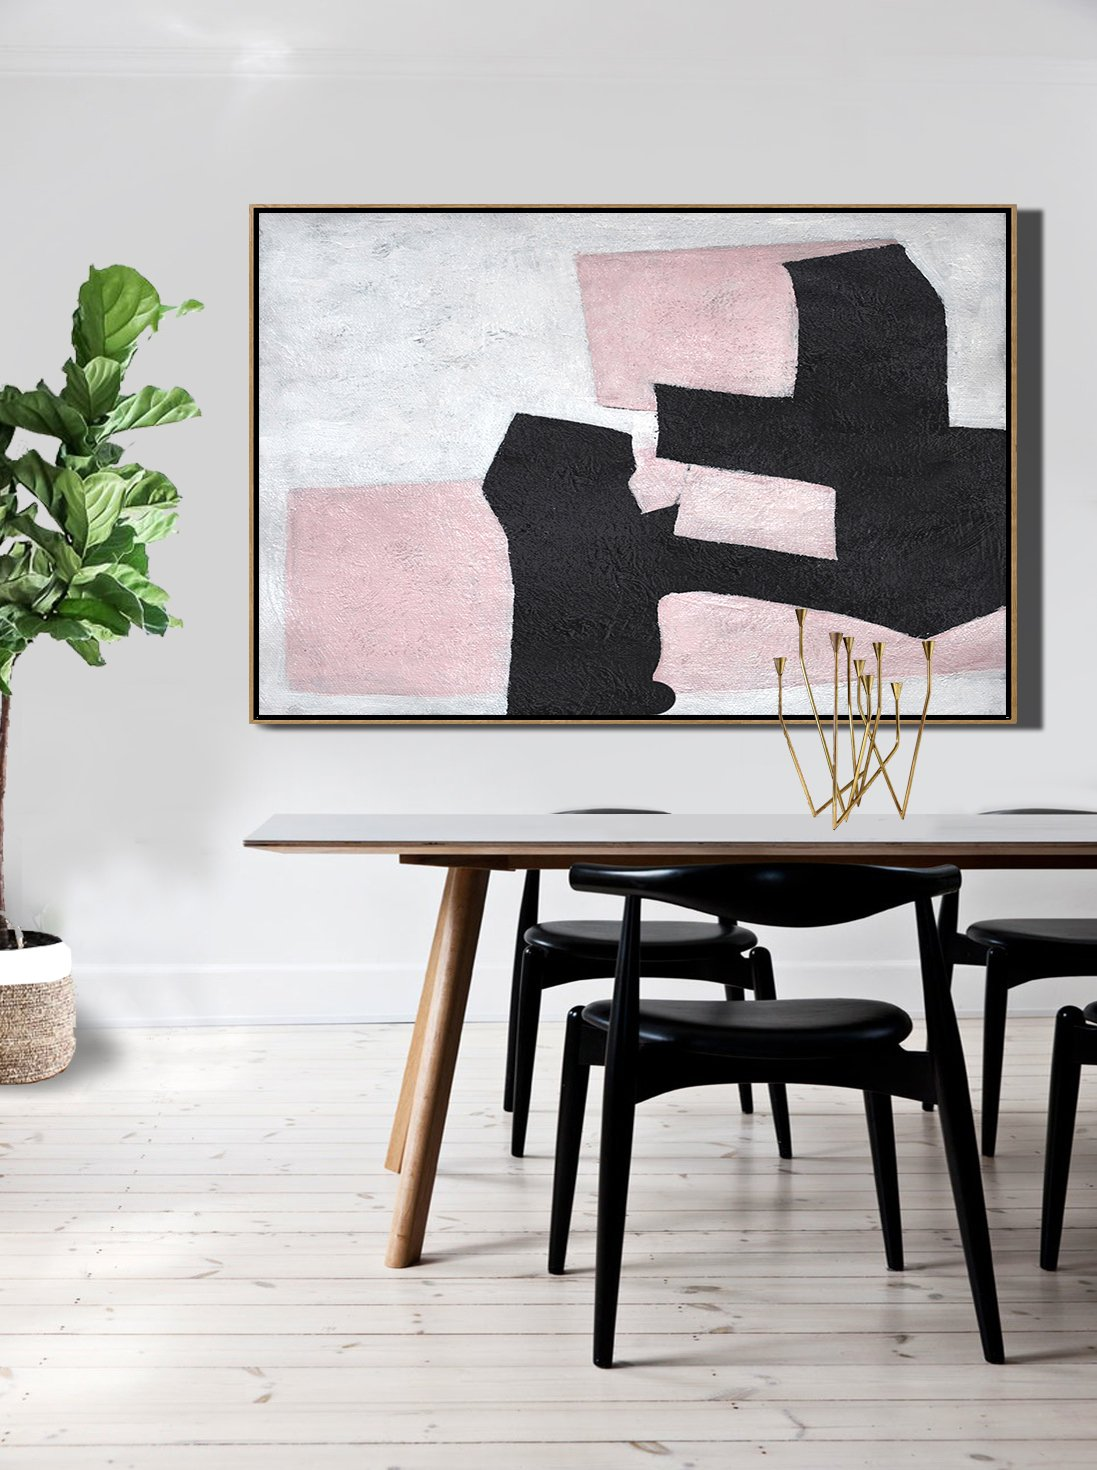 "Extra Large 72"" Acrylic Painting,Hand-Painted Oversized Horizontal Minimal Art On Canvas,Abstract Paintings On Sale"